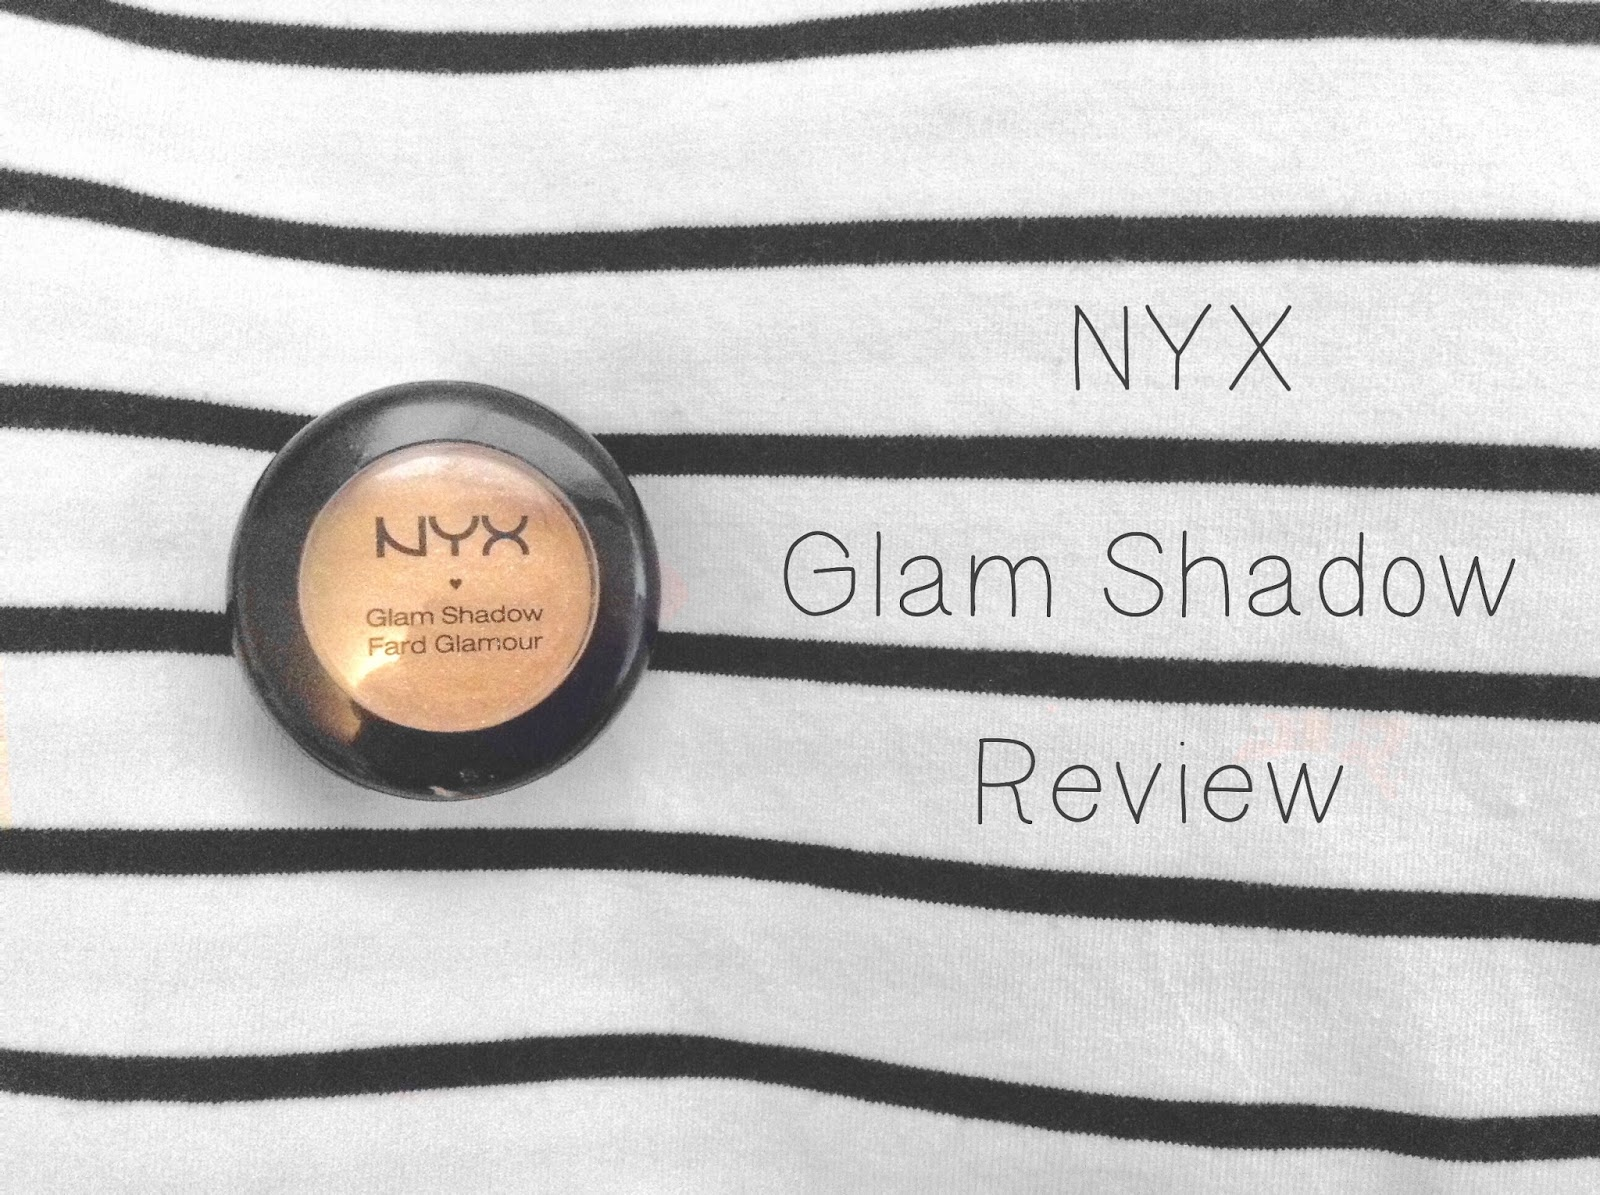 NYX Glam Shadow in Pixie Dust Review